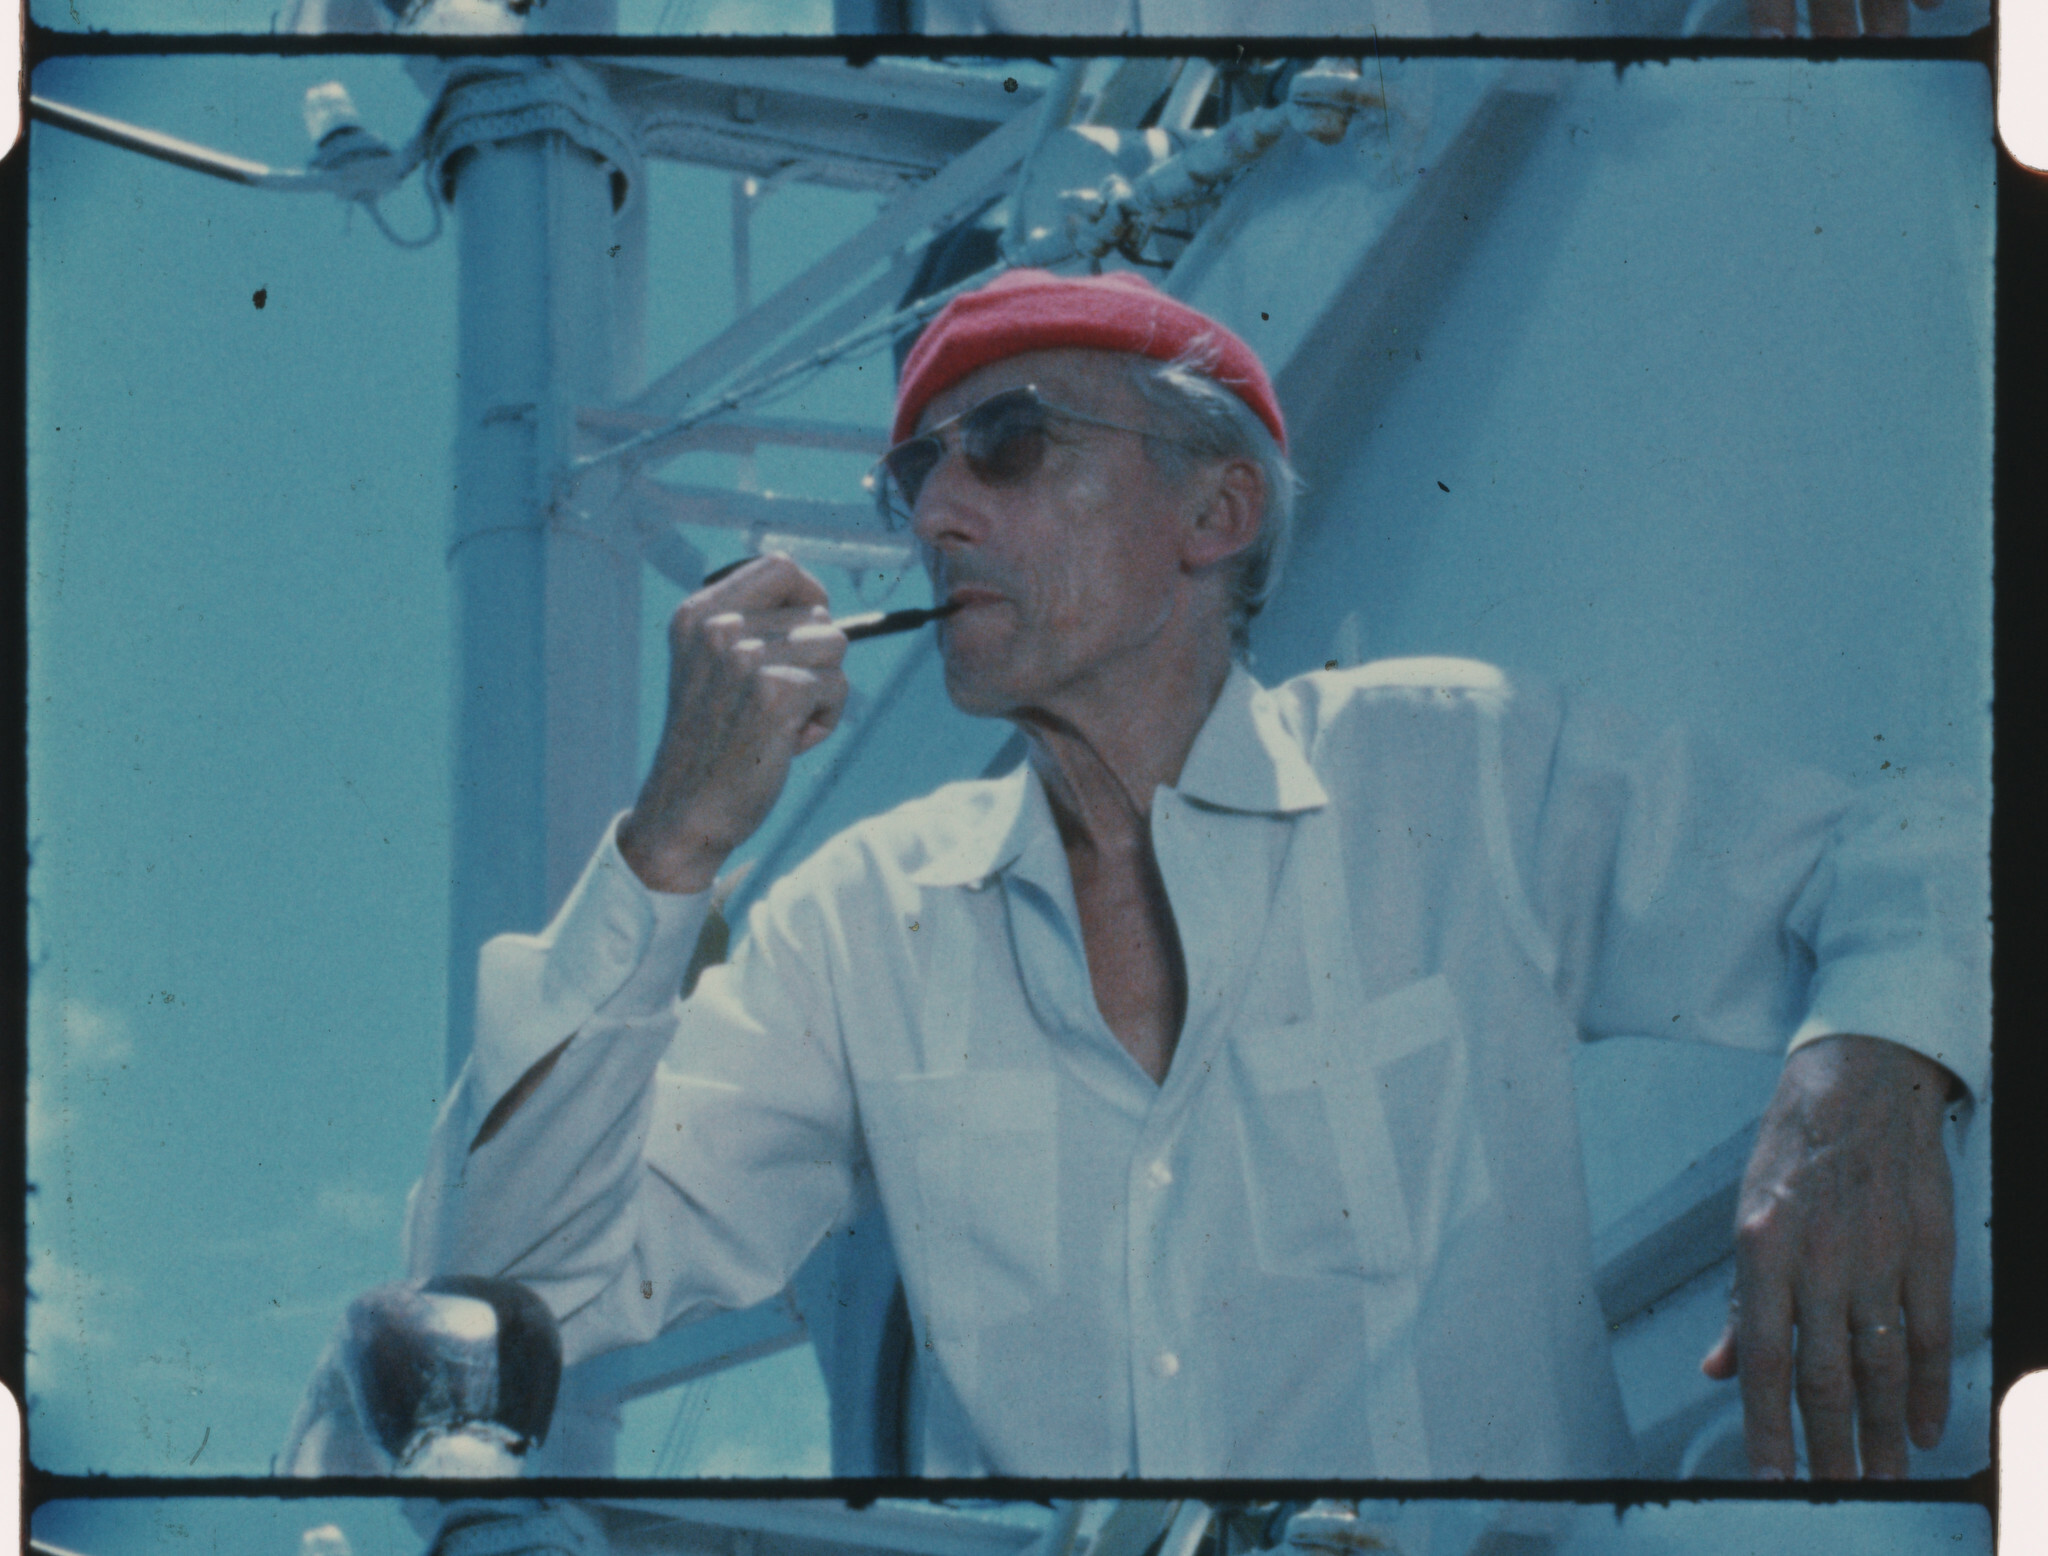 Jacques Cousteau wears his iconic red diving cap aboard his ship Calypso, circa 1970s. Photo: The Cousteau Society.